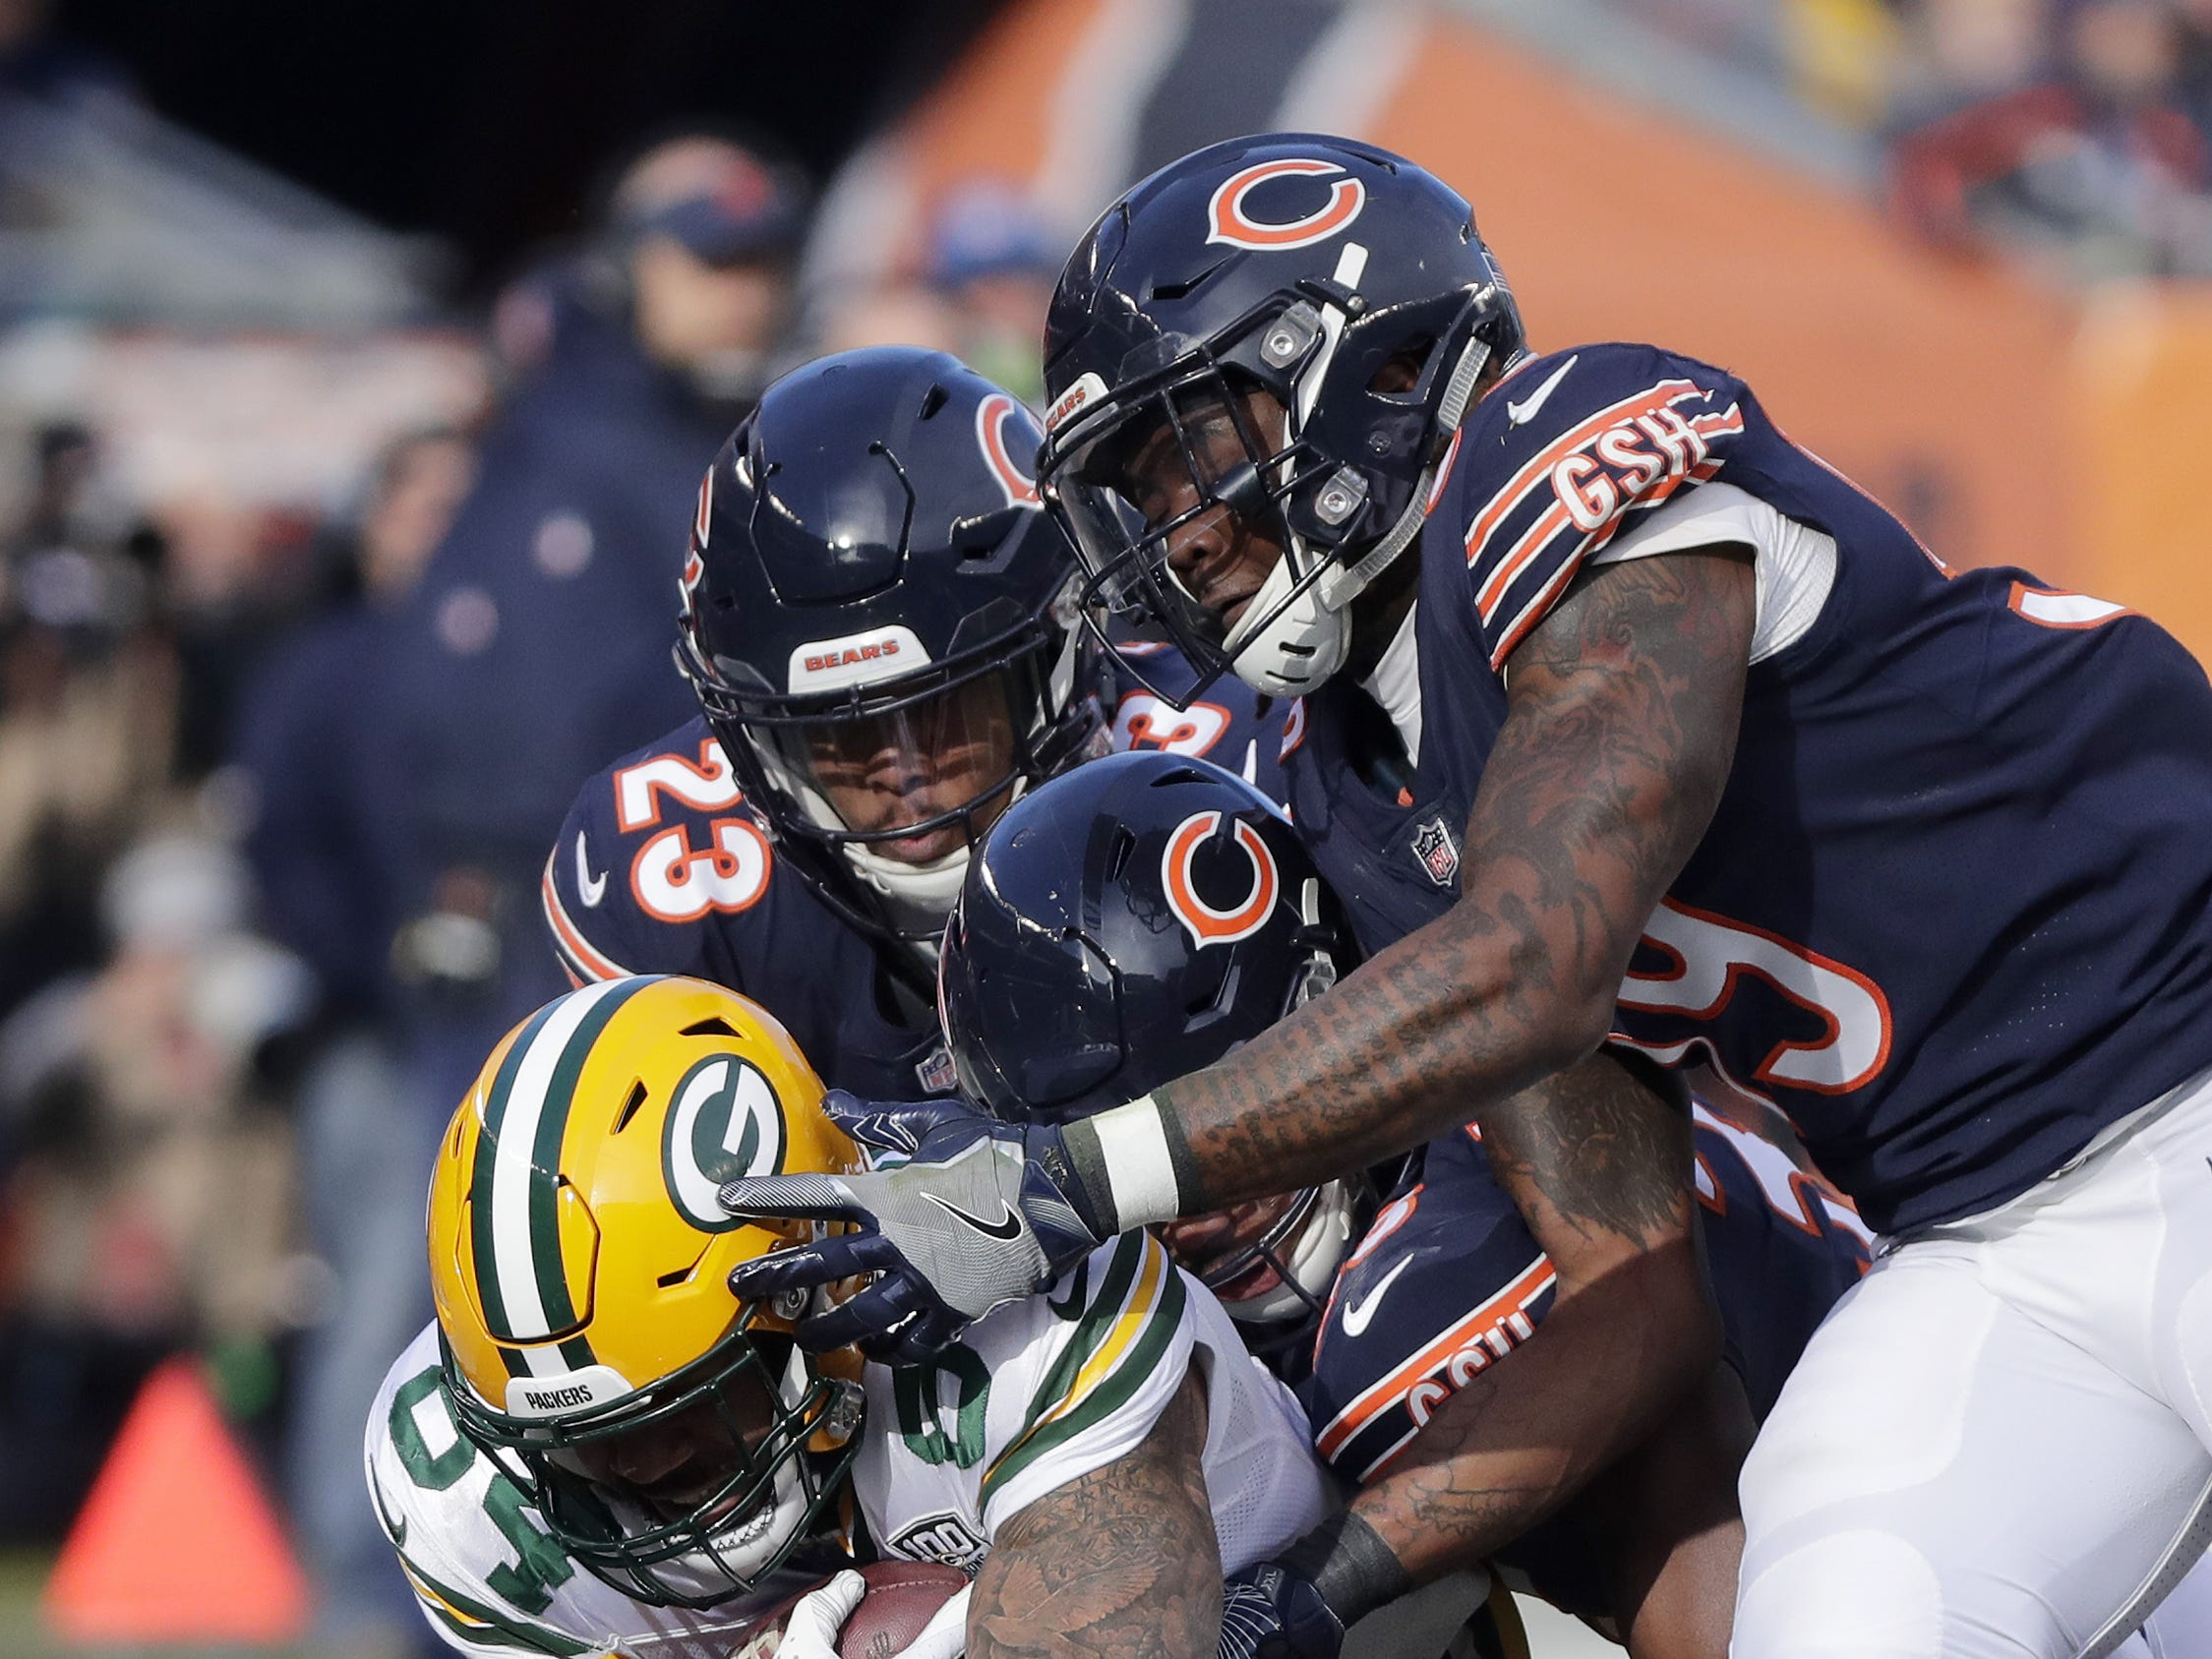 Green Bay Packers tight end Lance Kendricks (84) is tackled by a group of Chicago Bears in the second quarter at Soldier Field on Sunday, December 16, 2018 in Chicago, Illinois. Adam Wesley/USA TODAY NETWORK-Wis